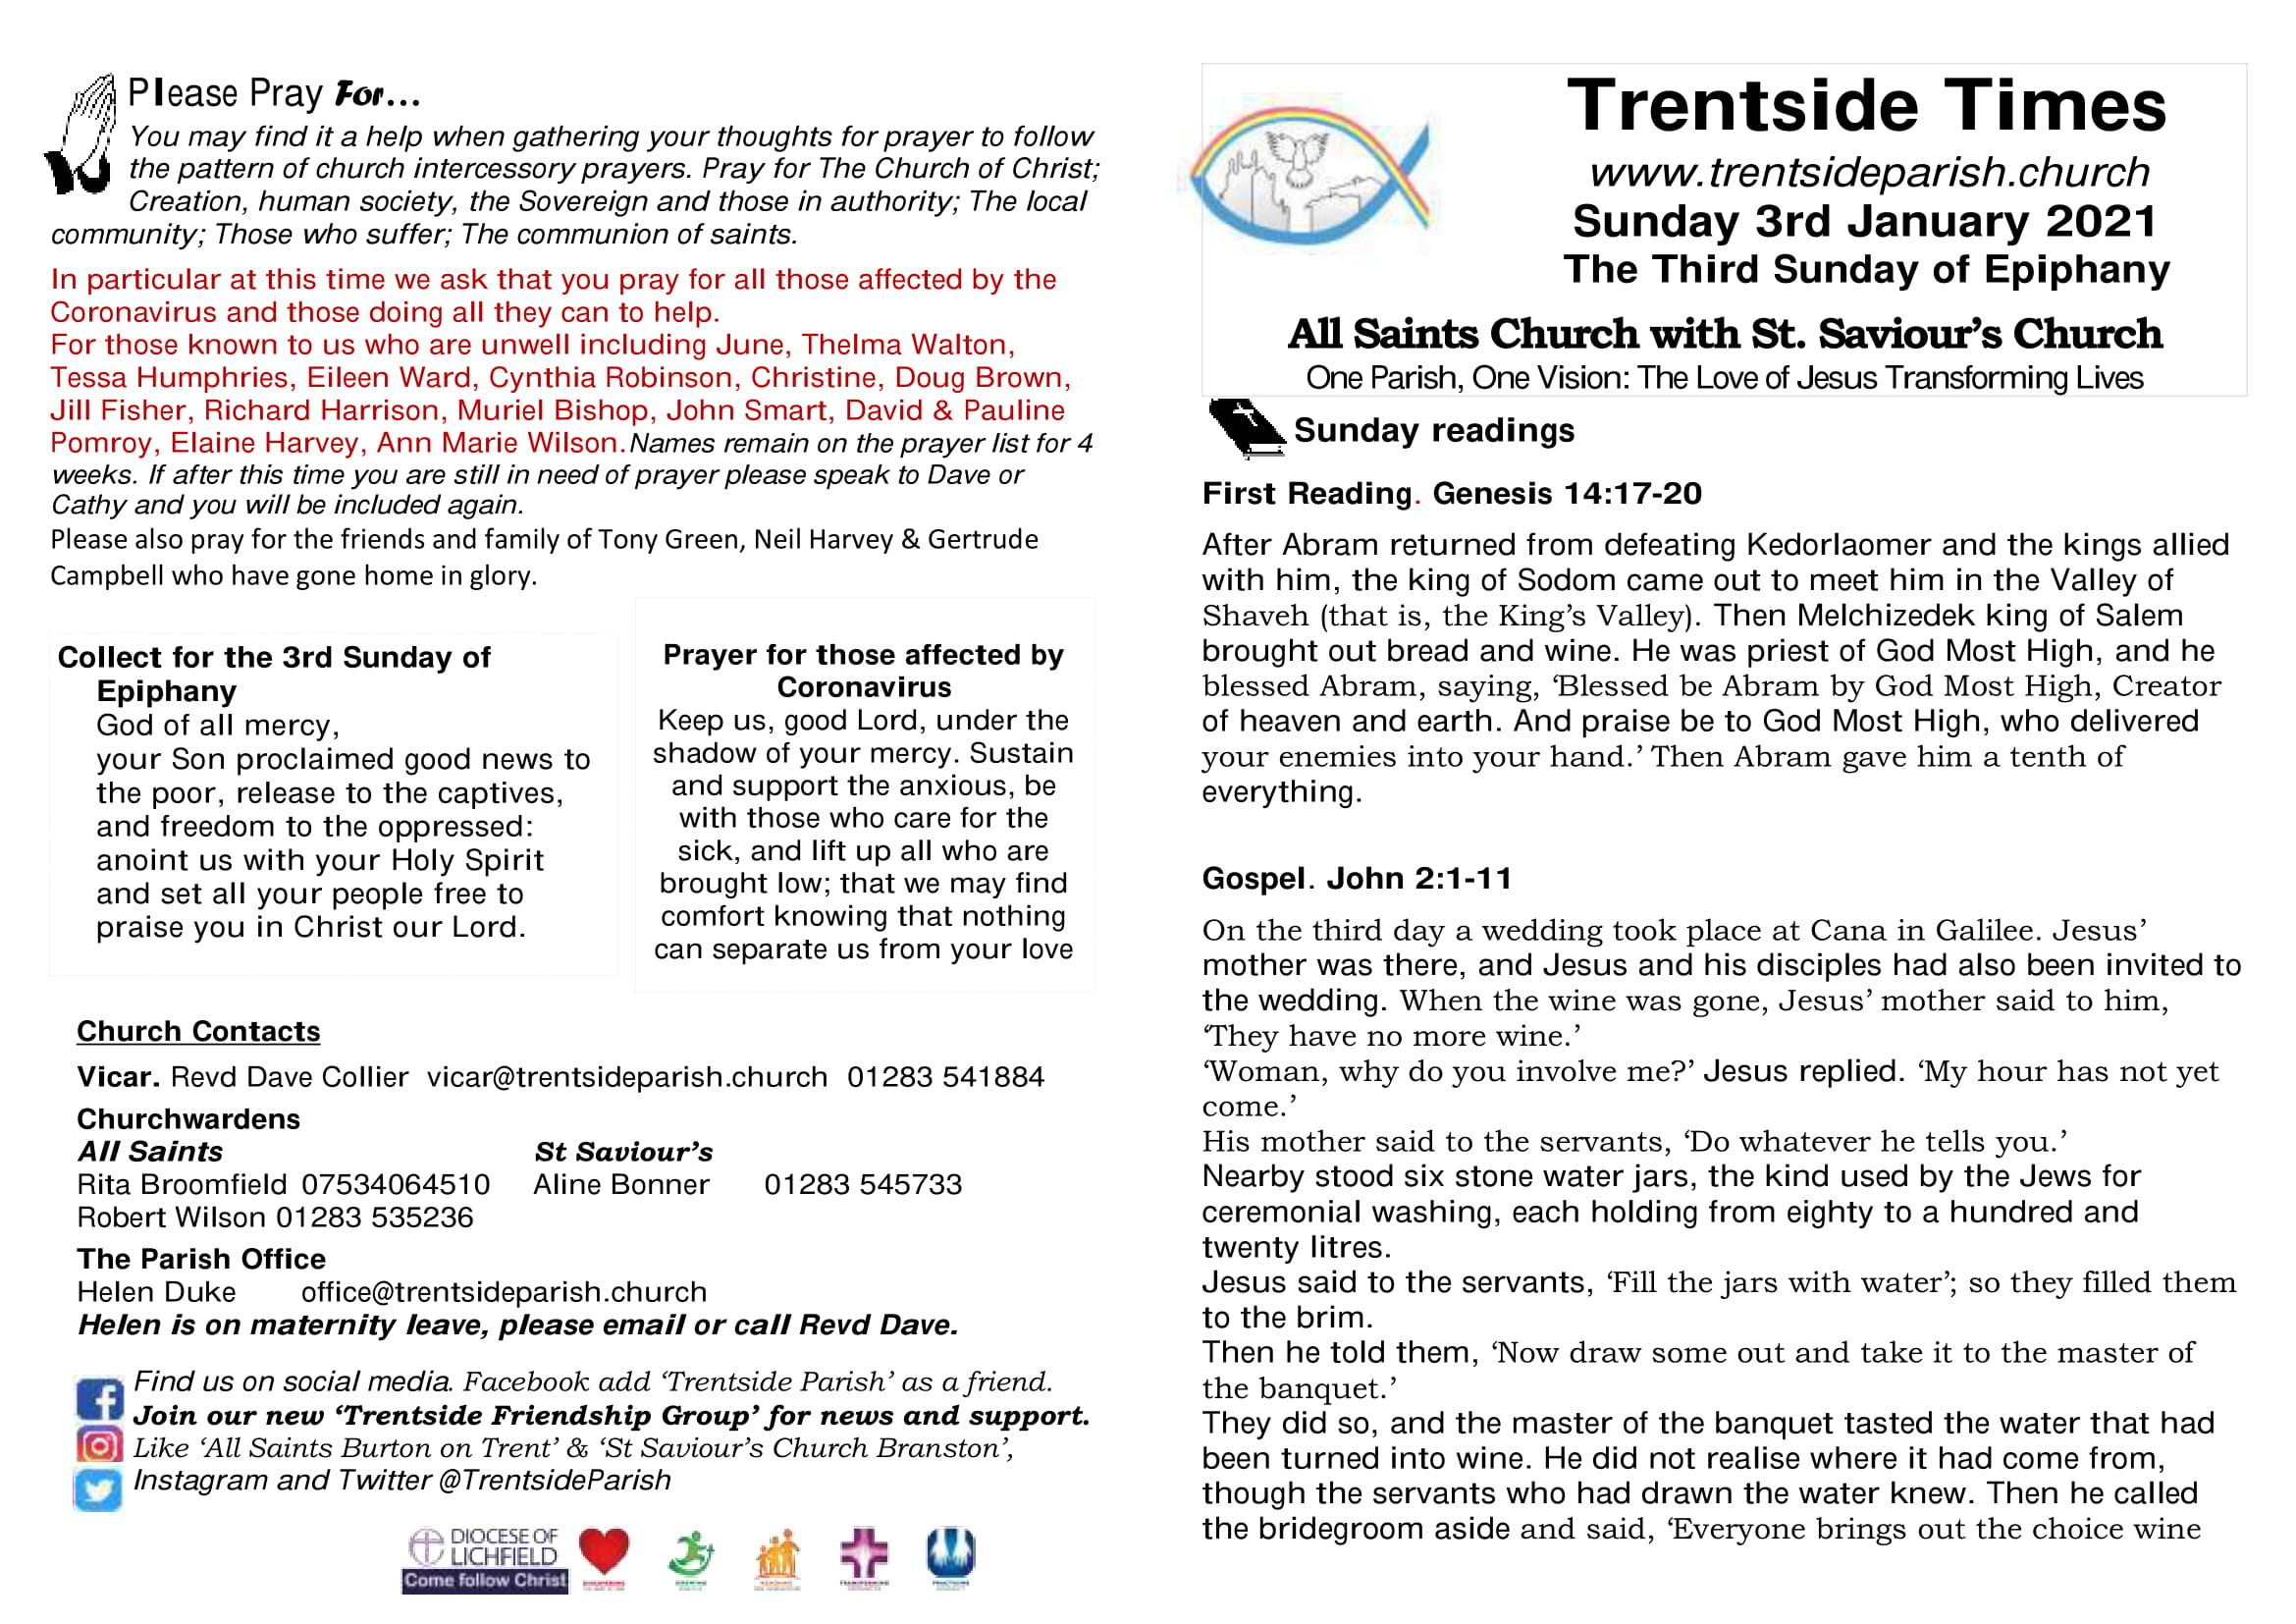 24th January 2021 Trentside Notices-page 1